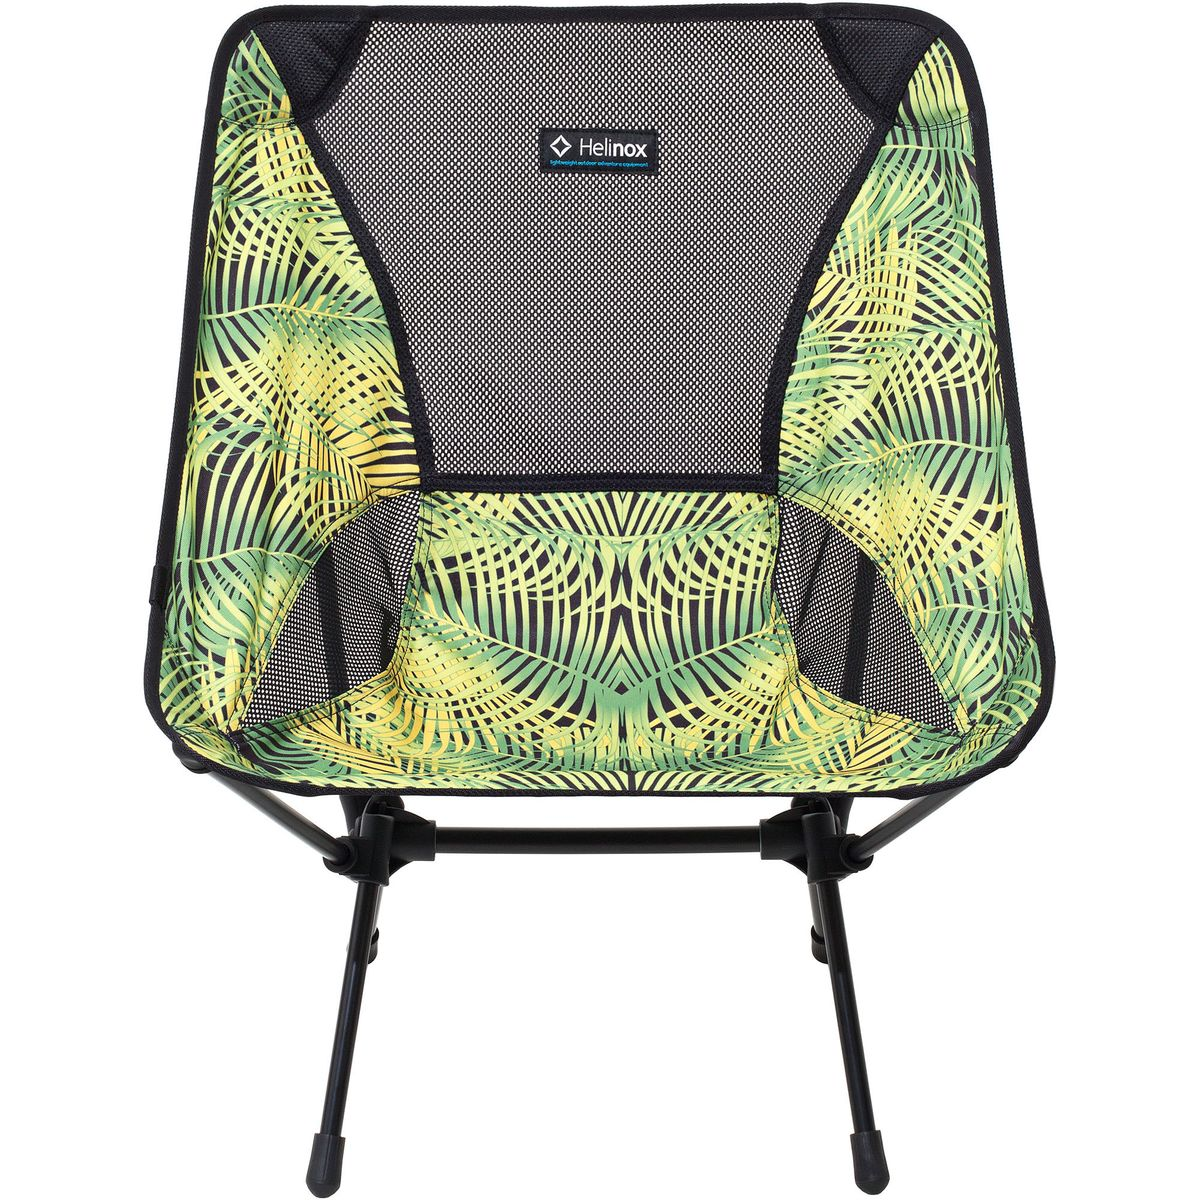 Helinox Chair One Camp Chair Palm Leaves Print One Size